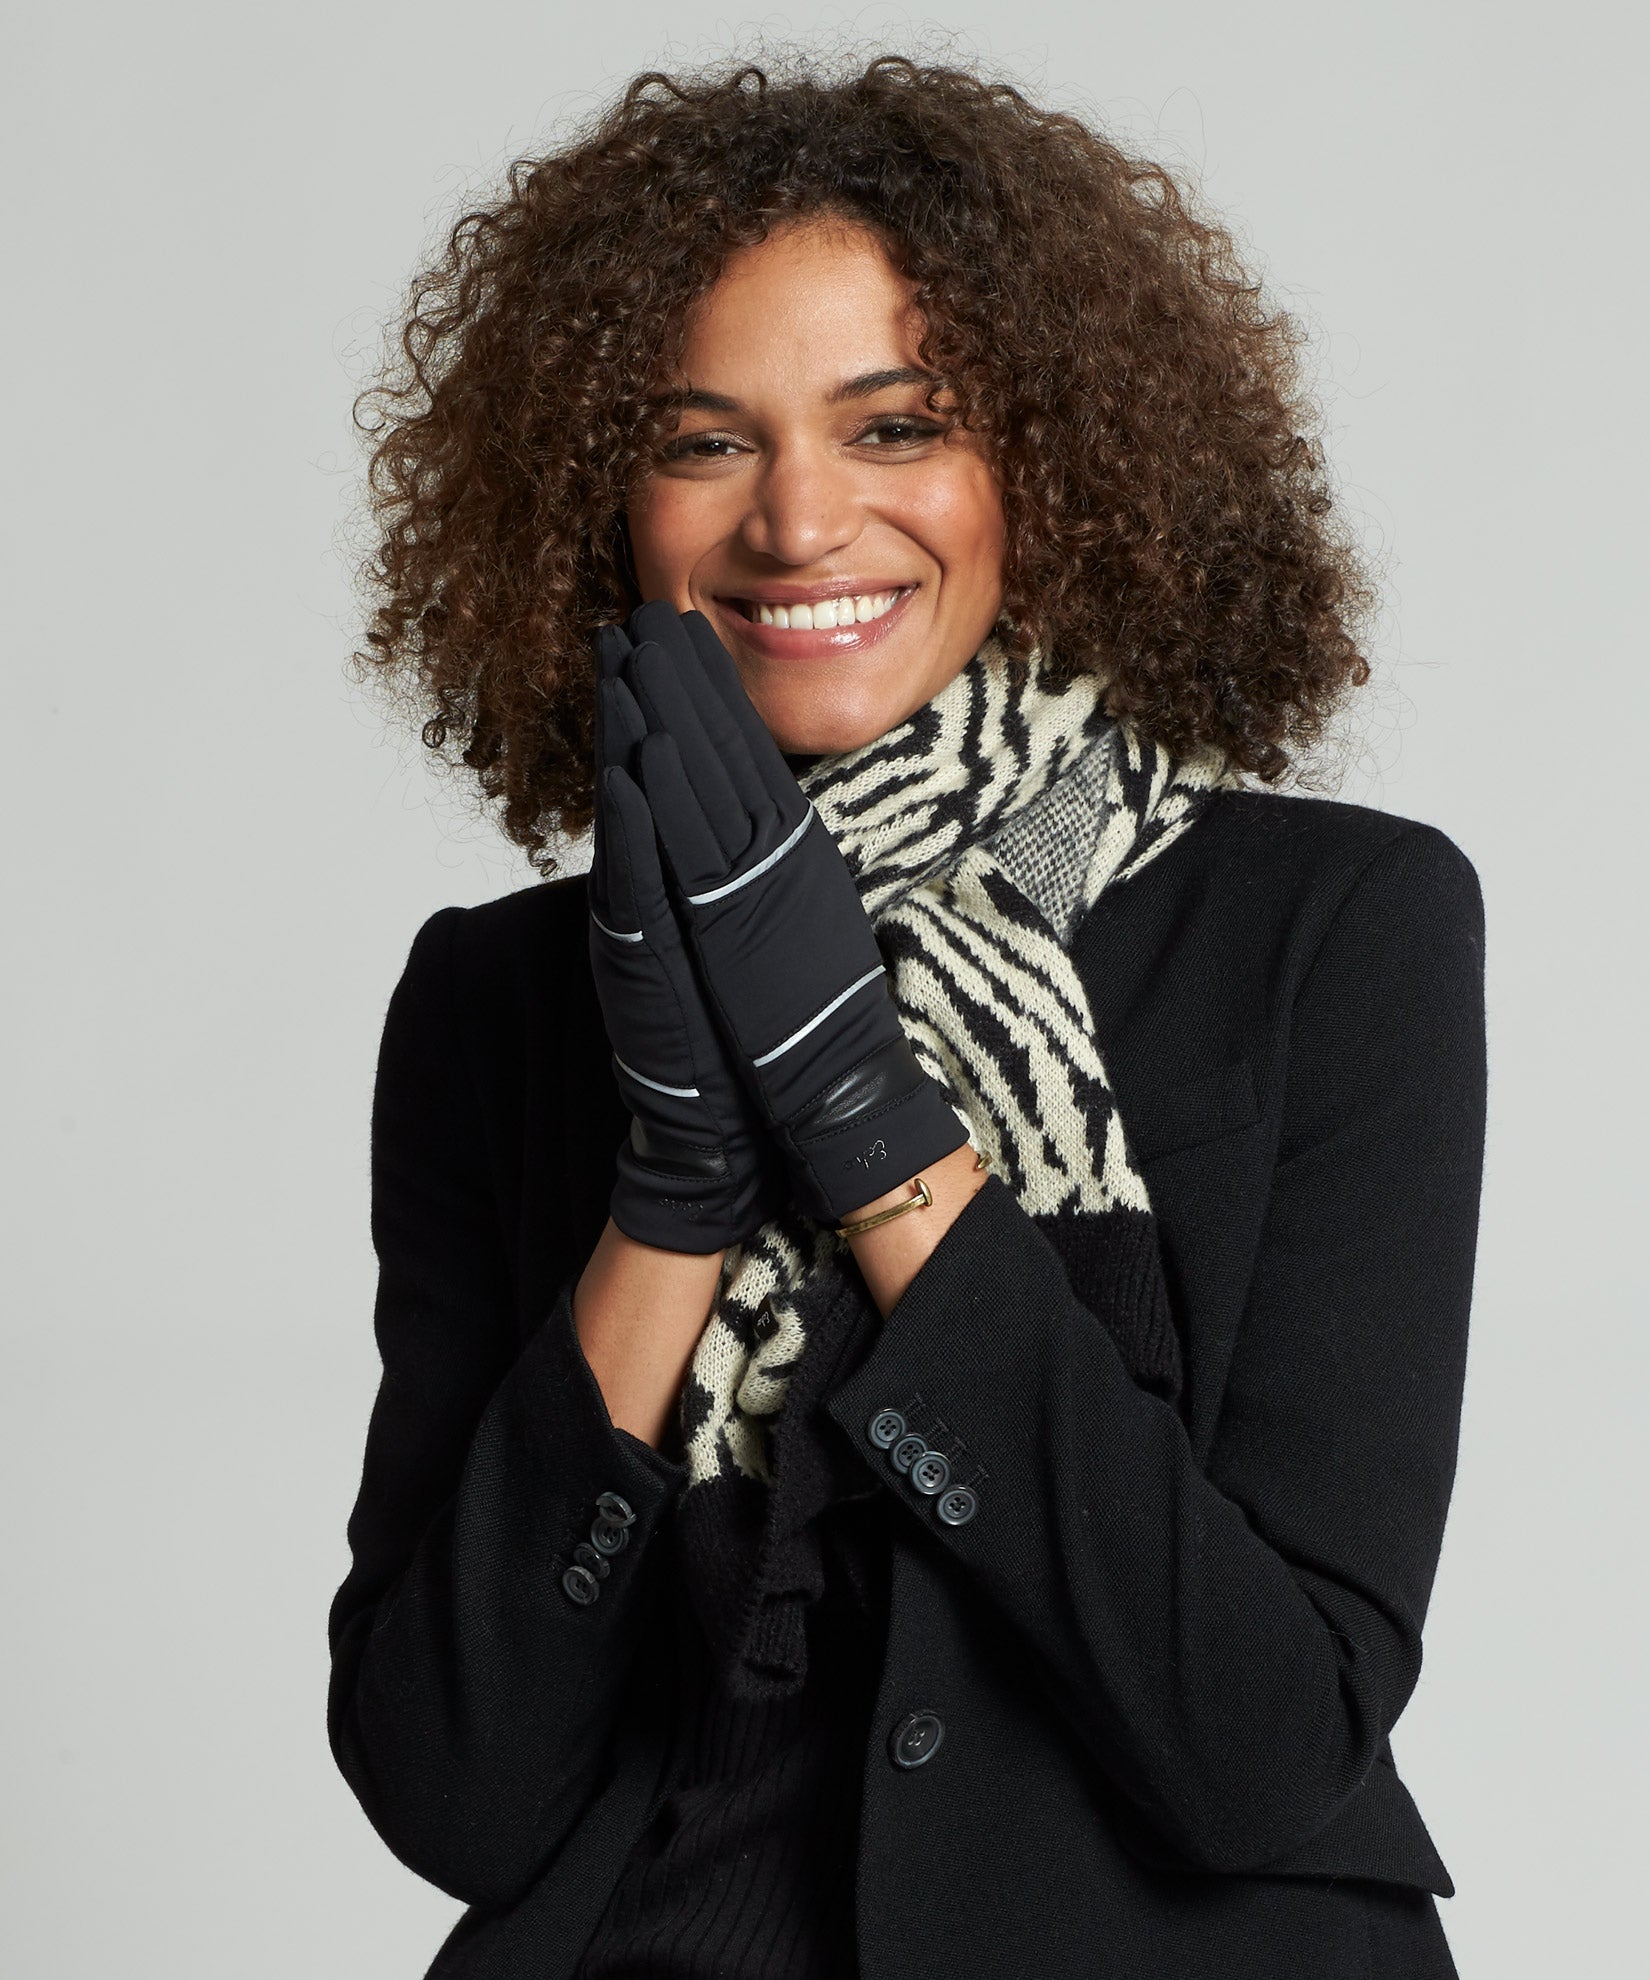 Black - Reflective Superfit Glove